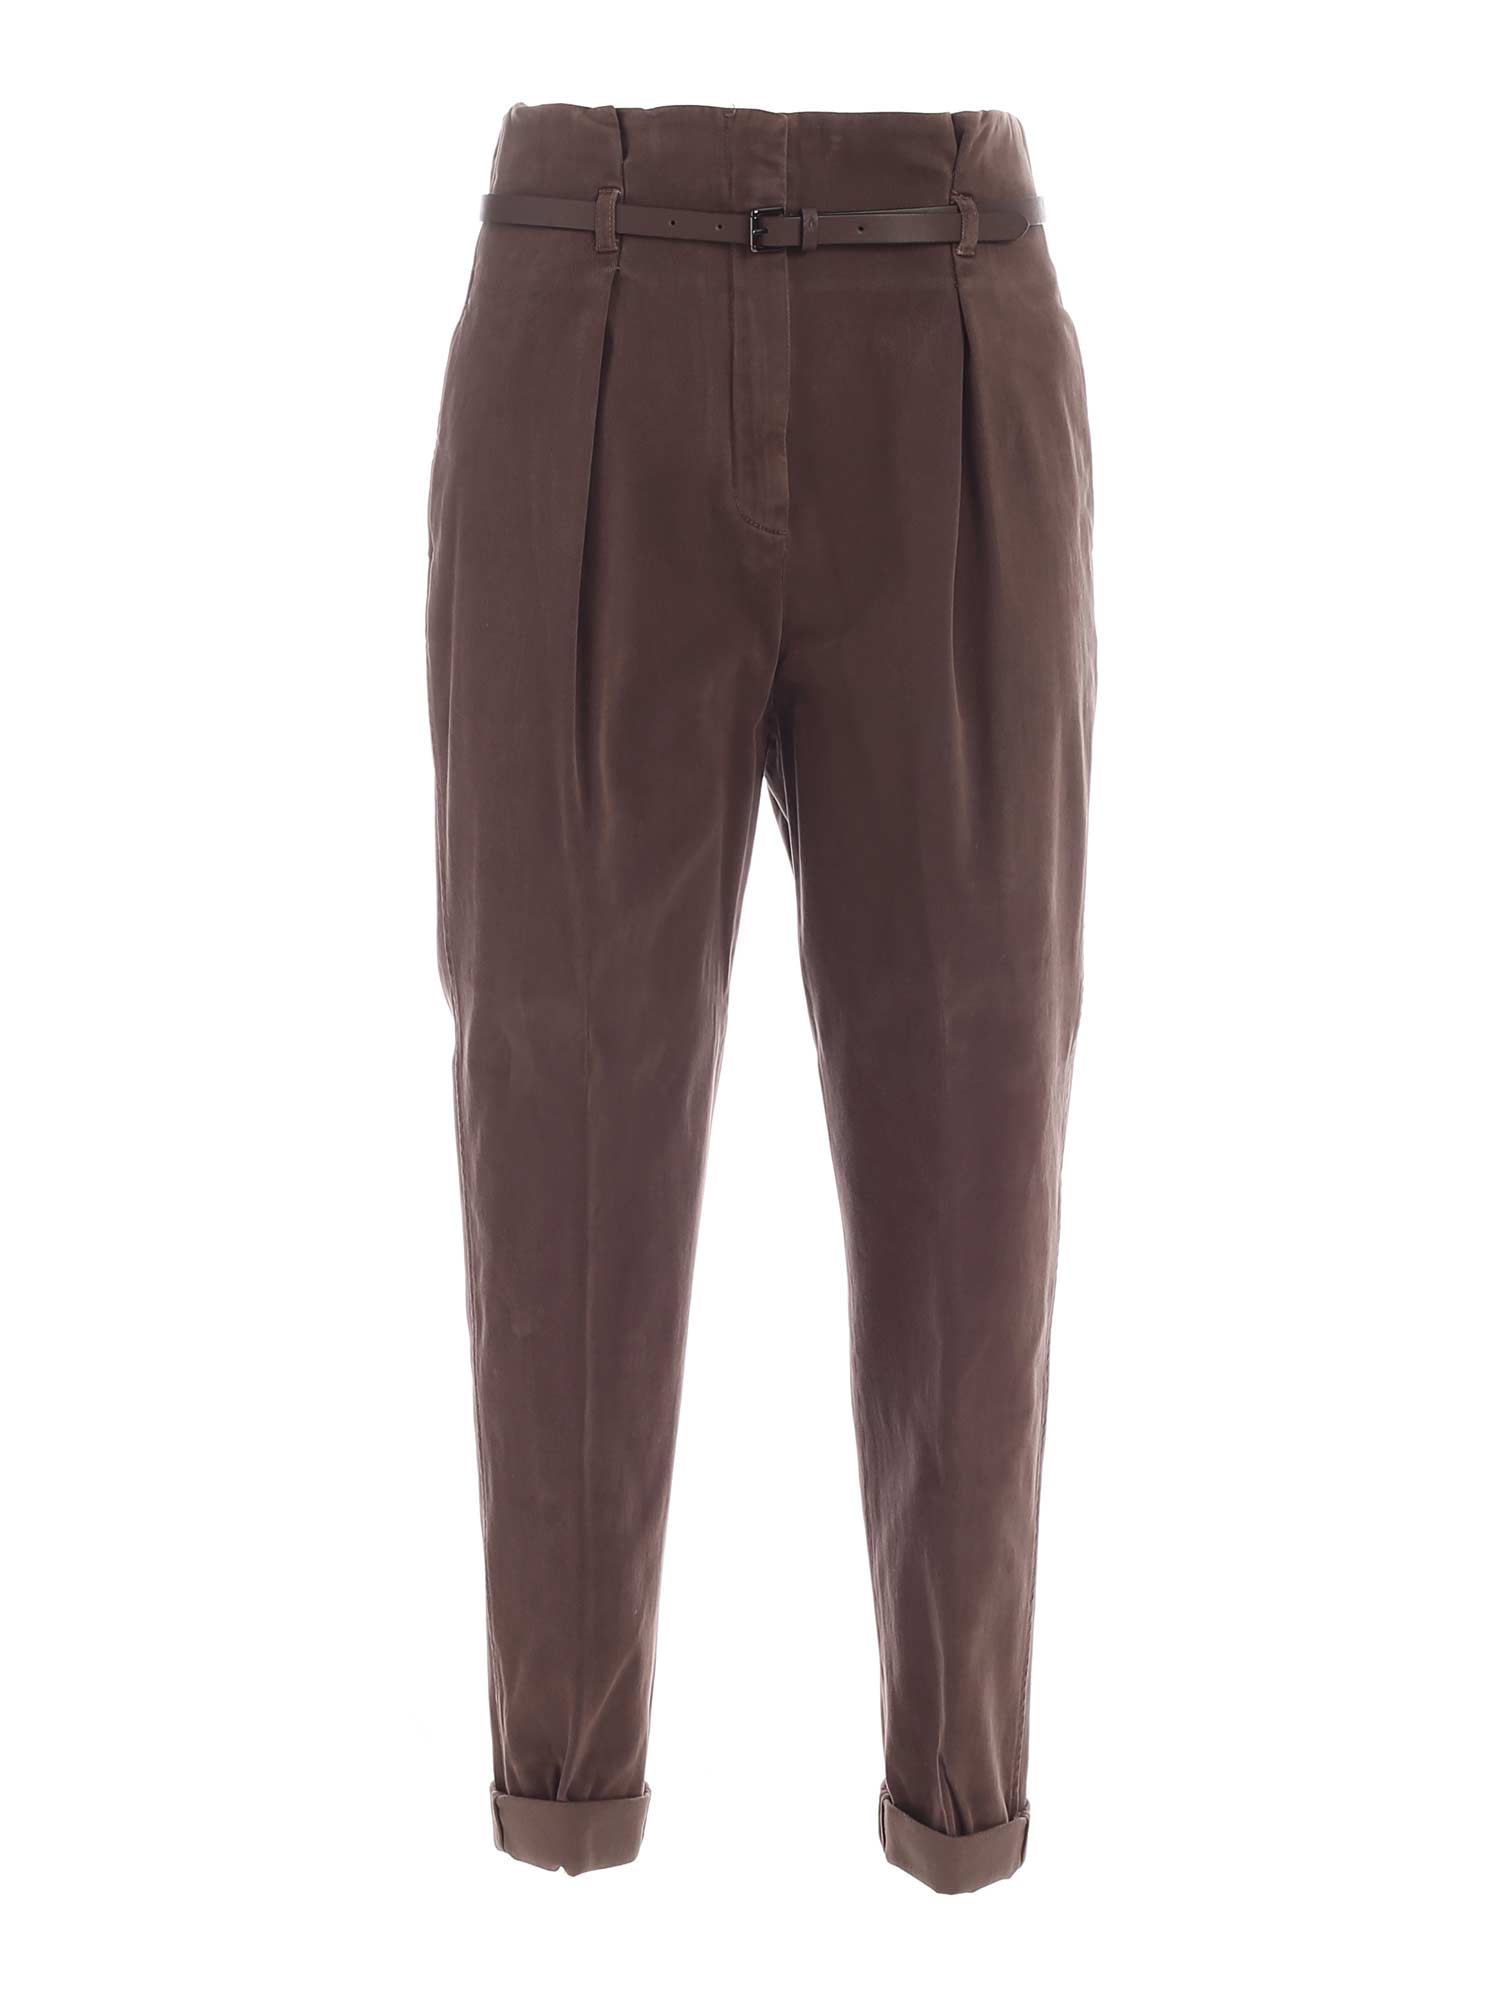 Peserico STITCHED TURN-UP PANTS IN BROWN